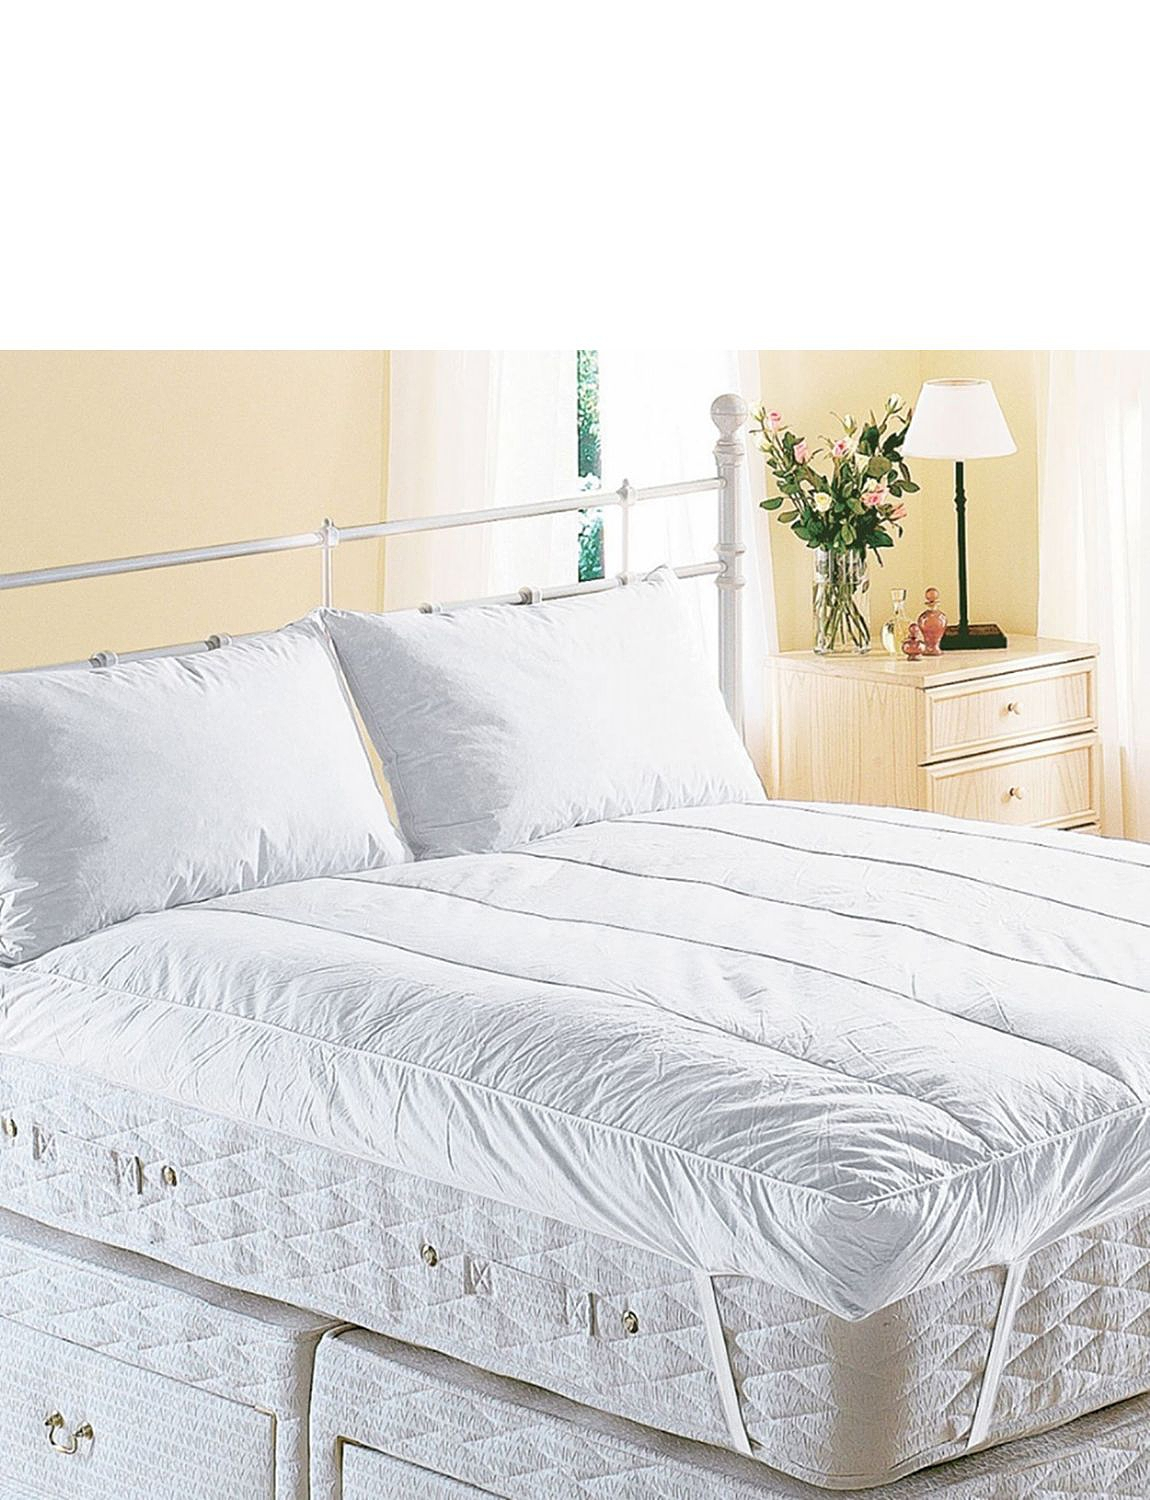 Snuggledown Extra Deep Luxury Feather Bed Mattress Topper